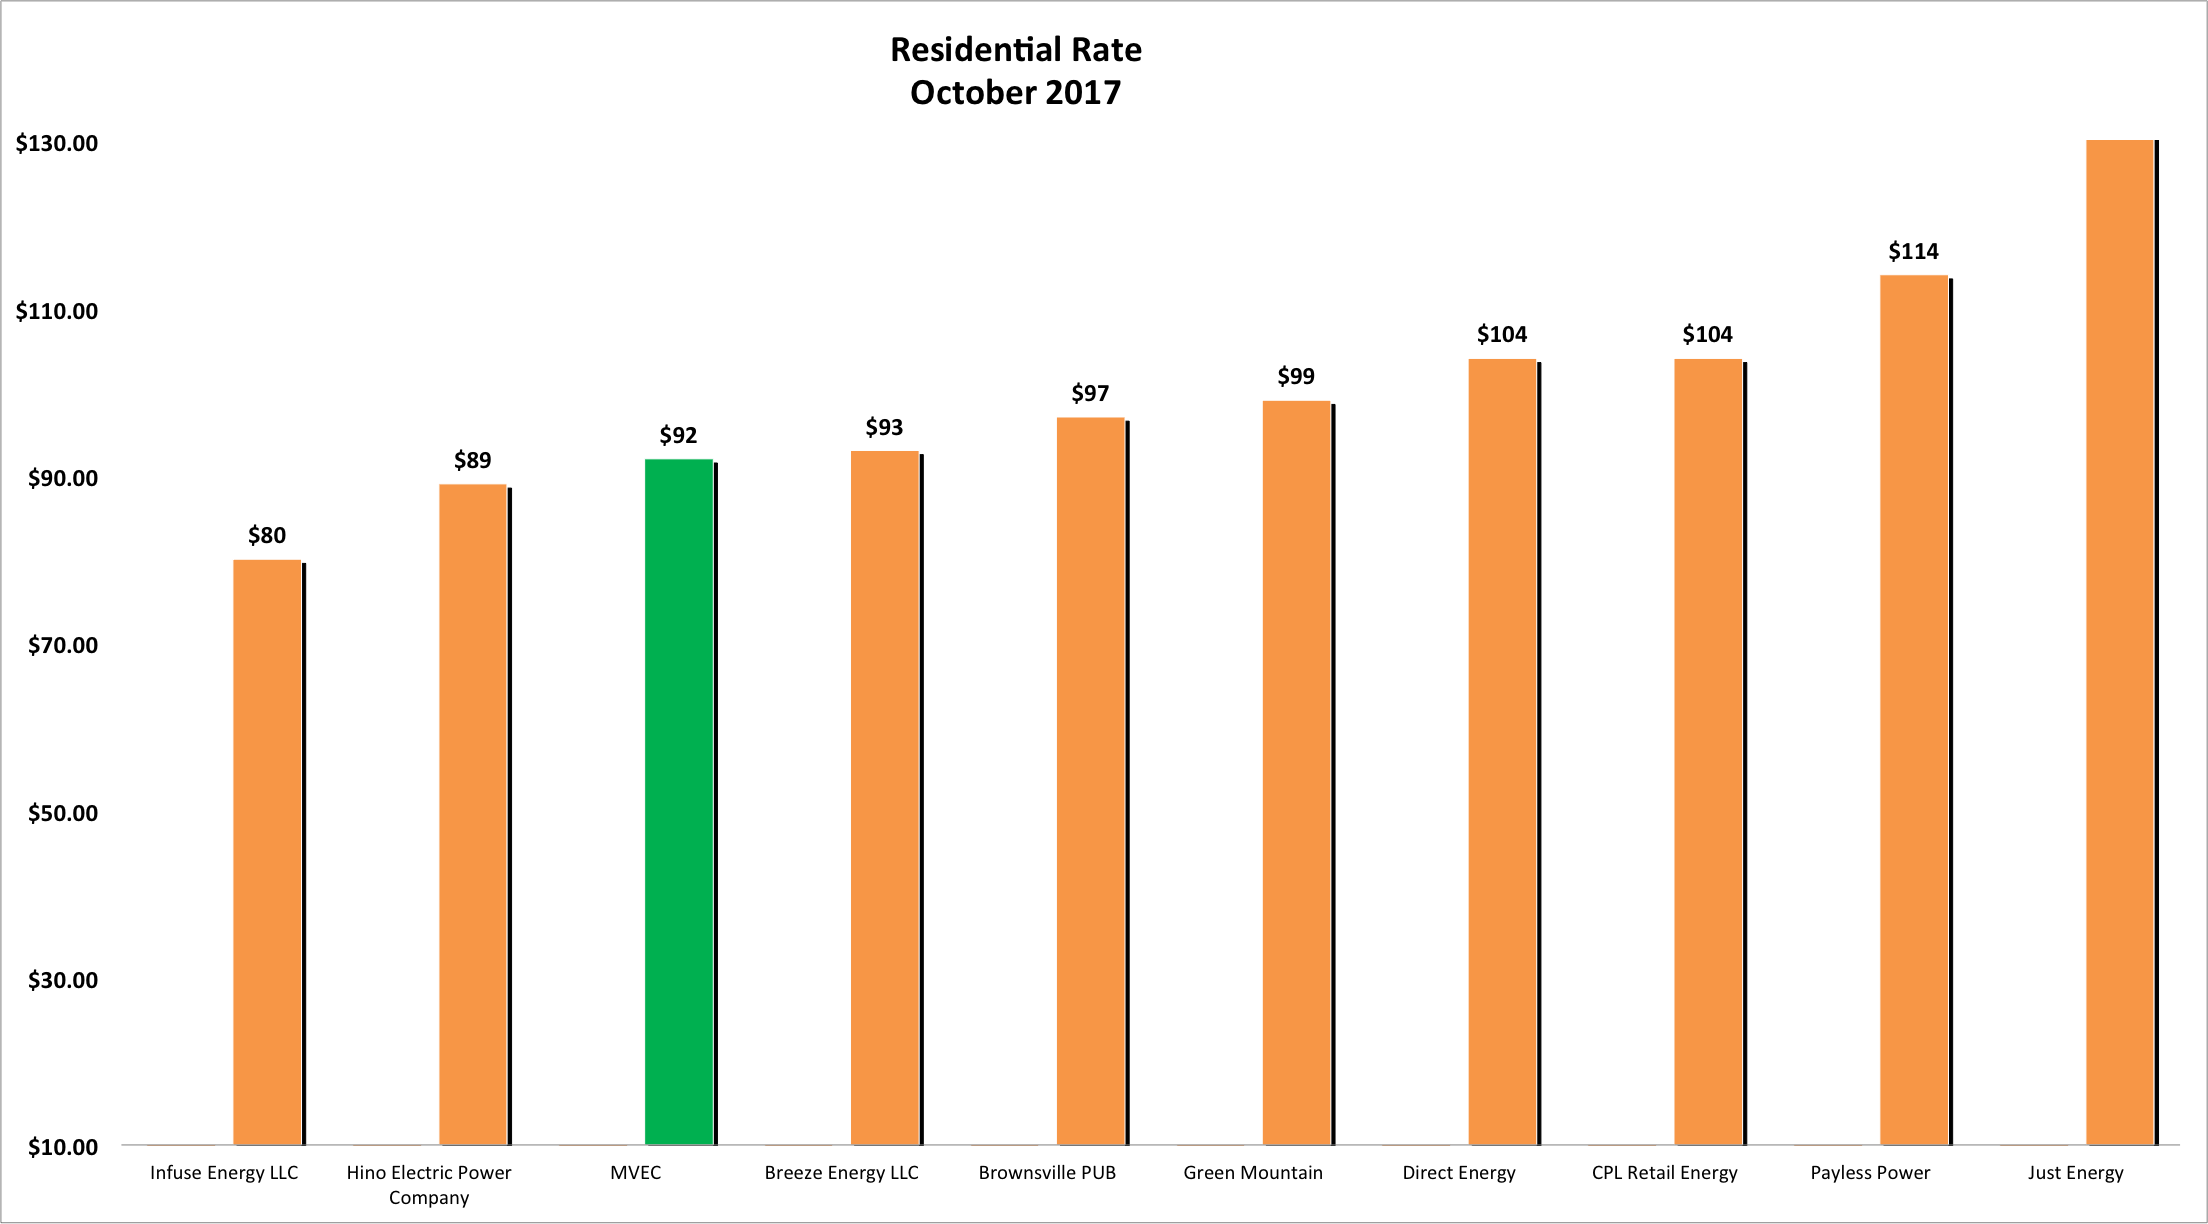 Bar graph showing Residential Rates for October 2017